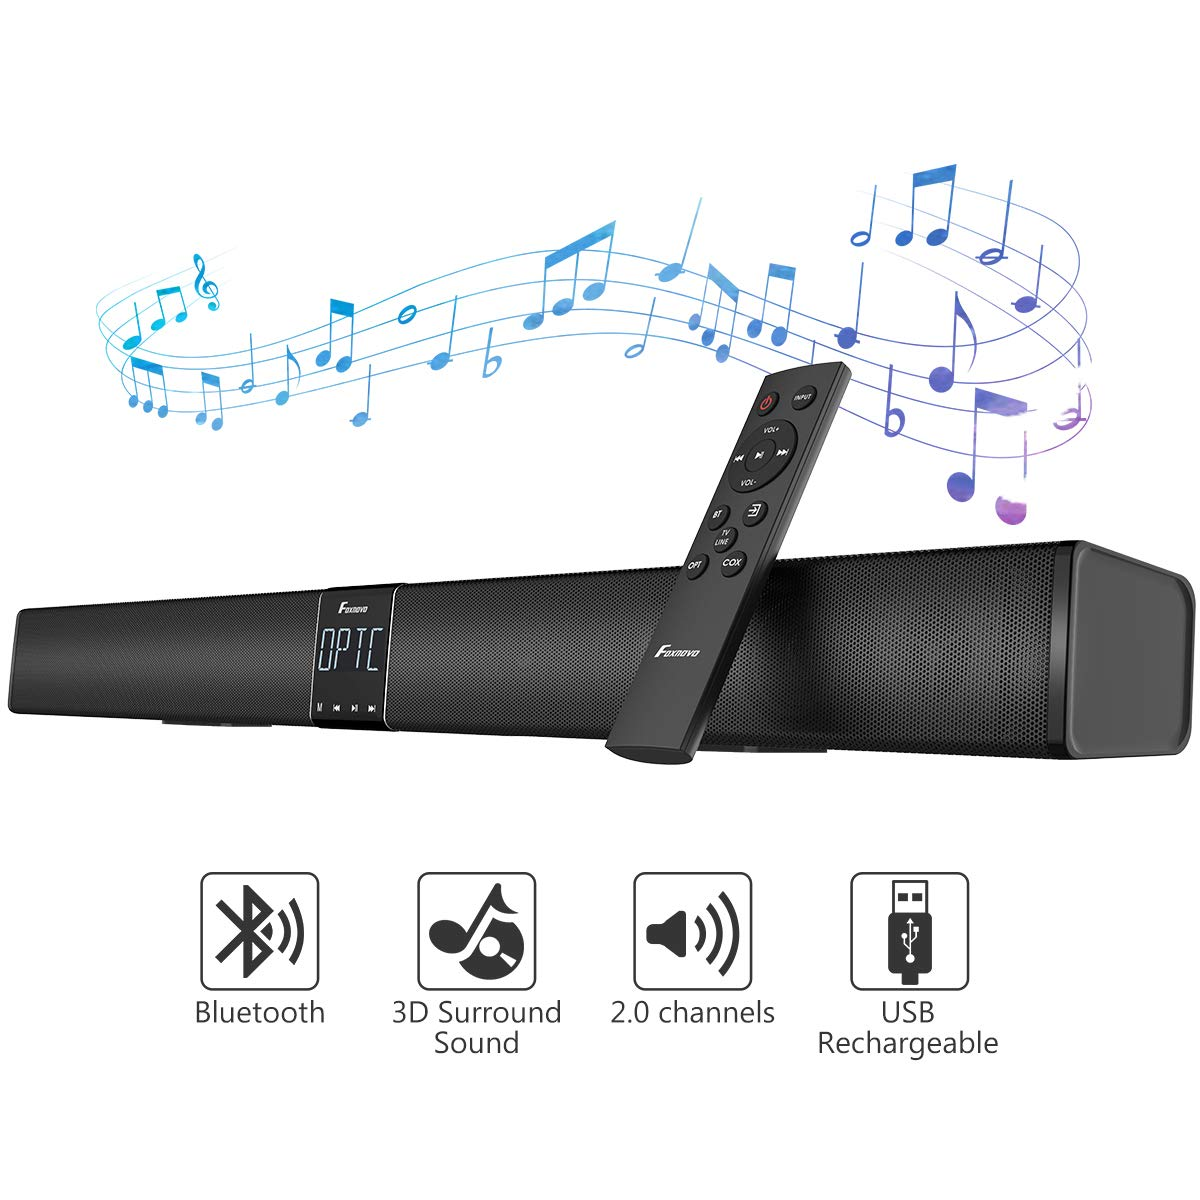 Foxnovo 110 dB Sound Bars for TV, 3D Surround Soundbar with 4 Powerful Speaker 2 Bass Speaker, 30 Inch 5.0 Bluetooth Wired Home Theater Speaker